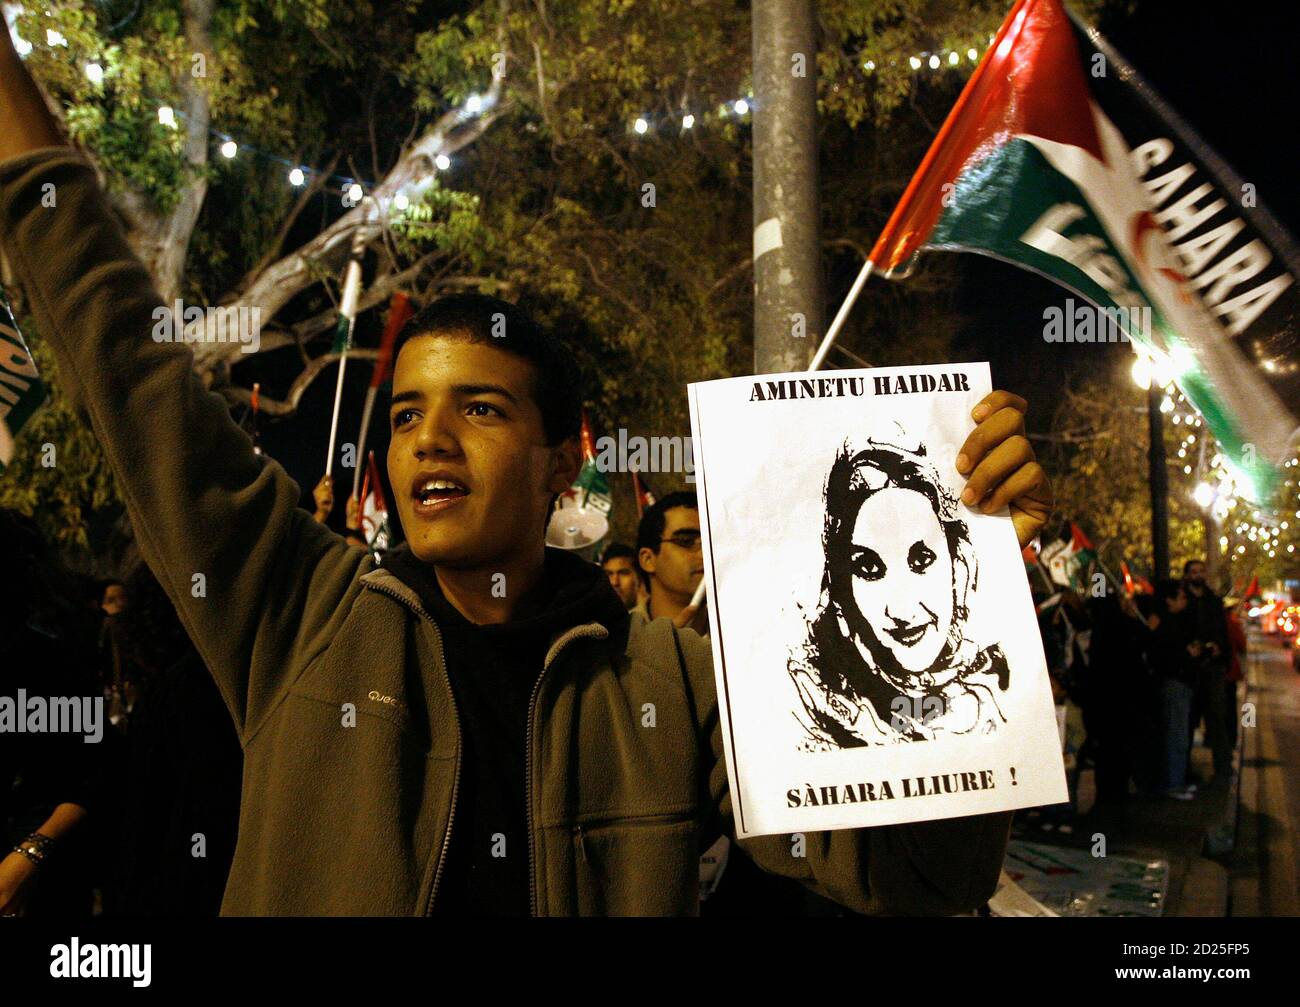 A demonstrator holds a picture of Western Sahara independence campaigner Aminatou Haidar during a protest in Valencia December 10, 2009. Haidar started a hunger strike 23 days ago in protest at being expelled from her desert homeland. She has been at Lanzarote airport in the Canary Islands refusing food ever since Moroccan authorities put her back on a plane when she returned home to Laayoune after a trip to New York. REUTERS/Heino Kalis (SPAIN CONFLICT POLITICS) Foto Stock